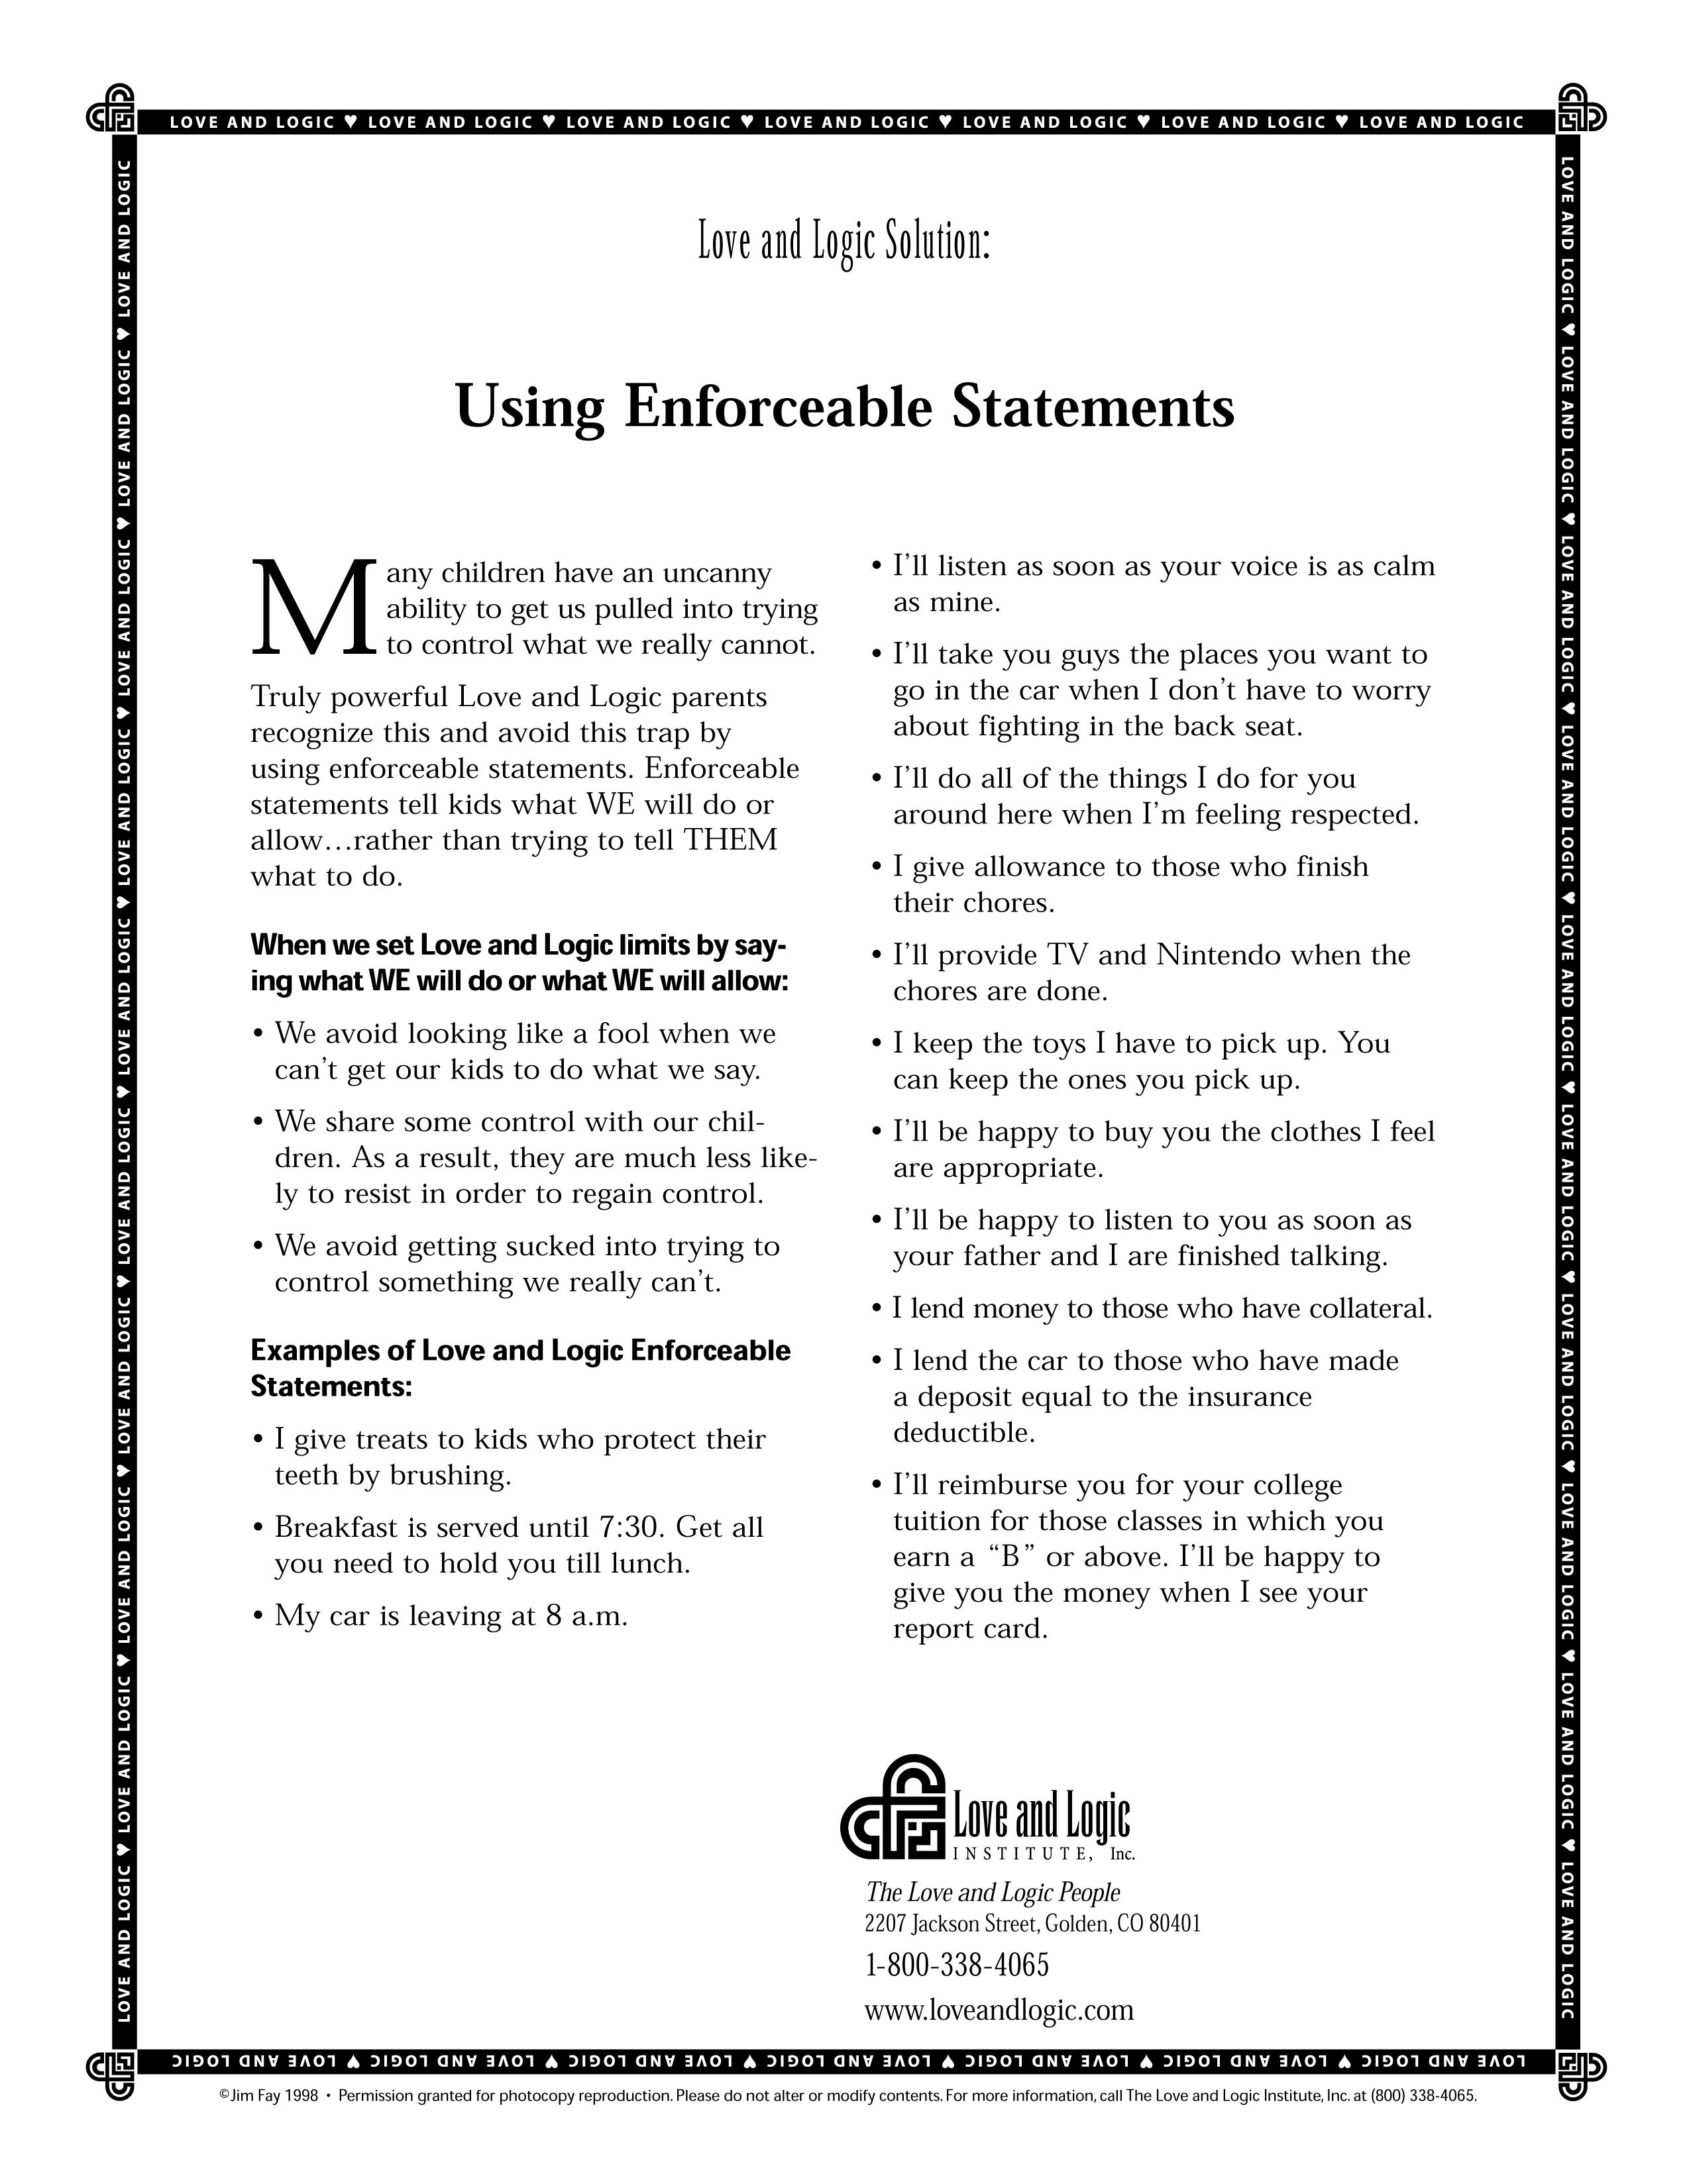 Parenting Handout On How To Use Enforceable Statements